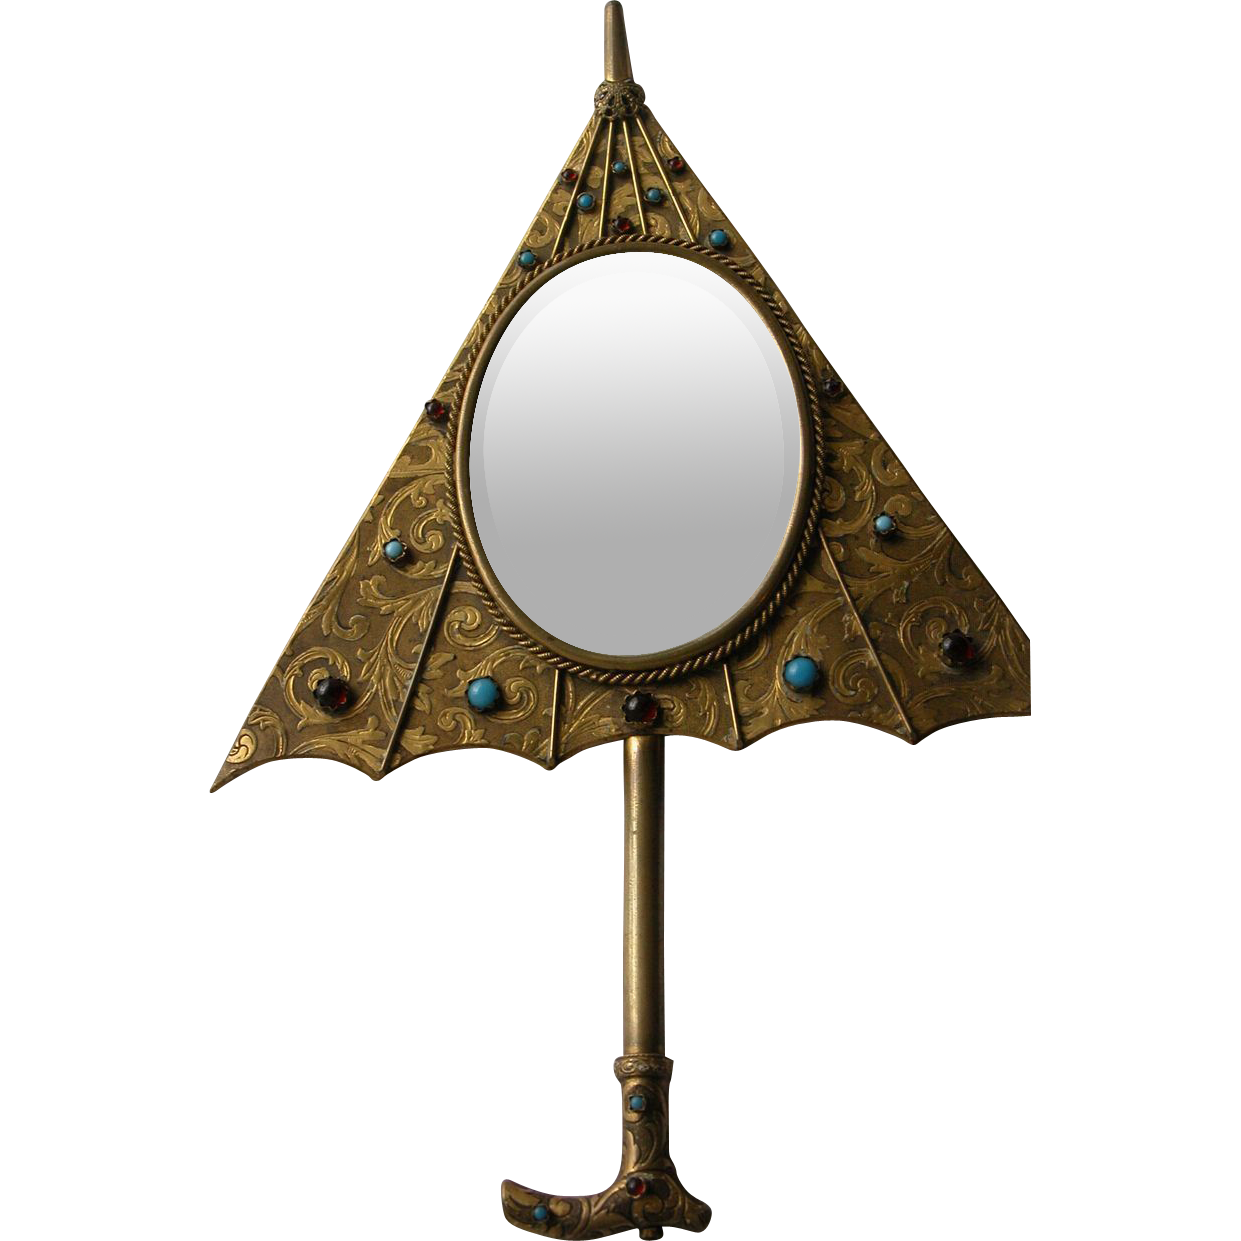 1920's Jeweled Mirror for Wall or Hand Mirror in Shape of an Umbrella with Cabochons